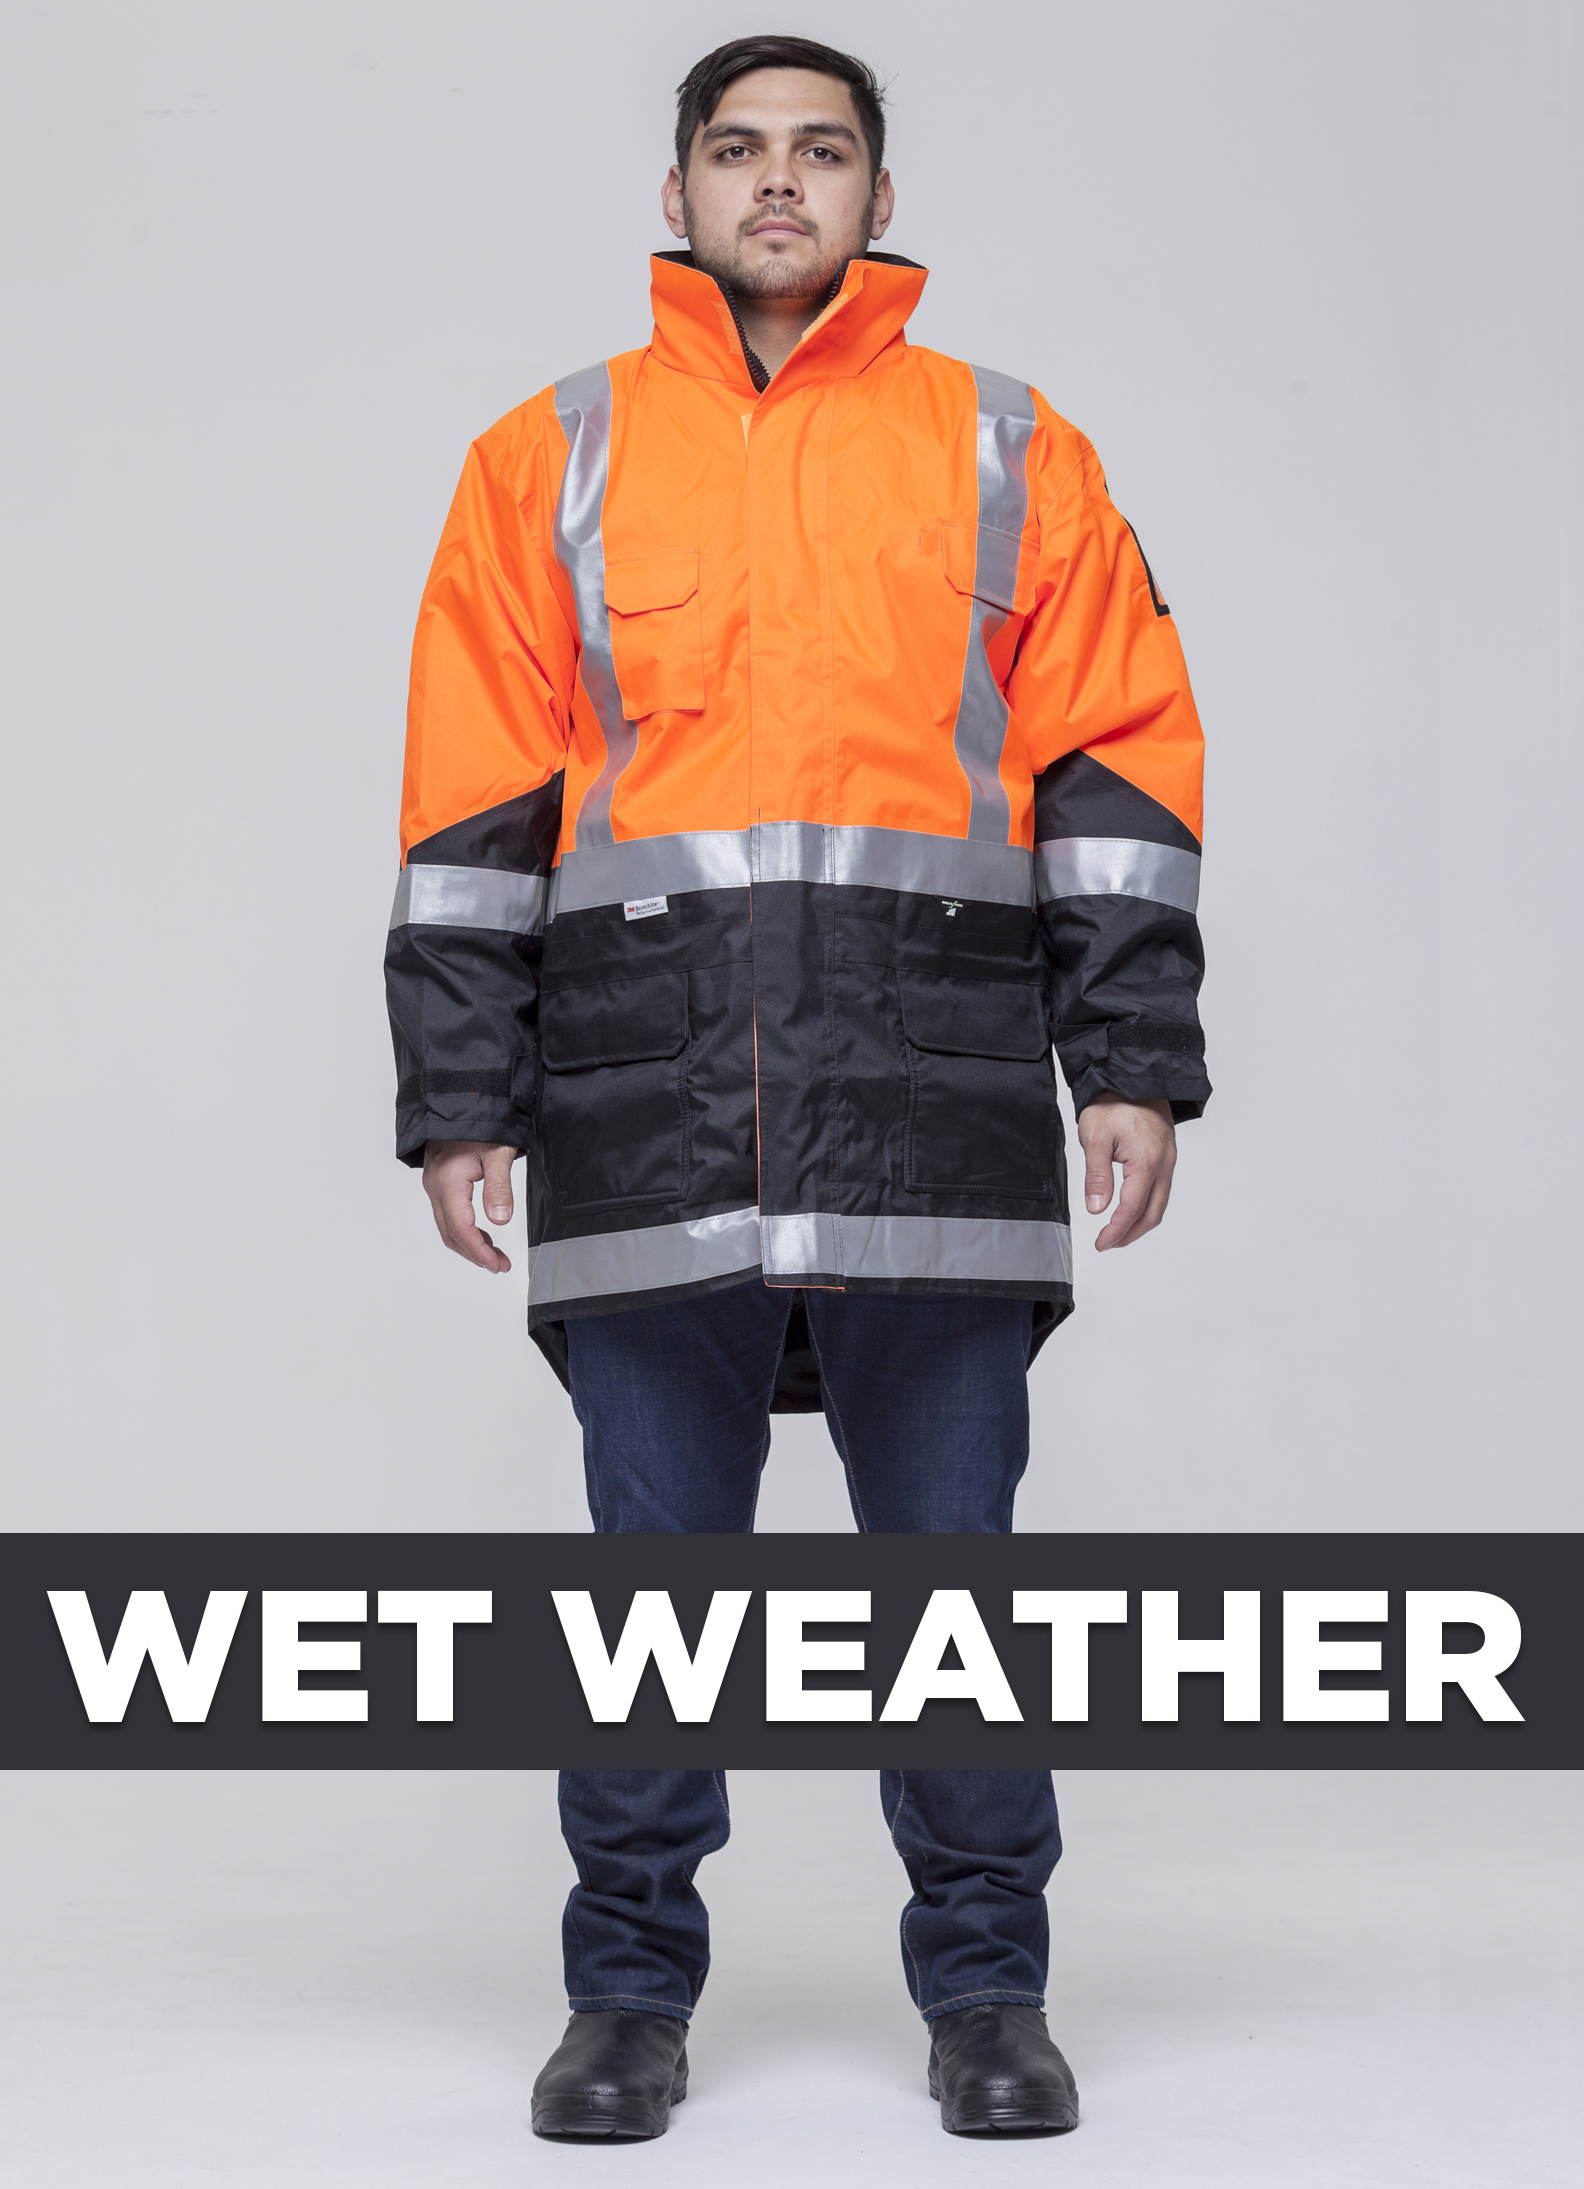 Wet_Weather.jpg